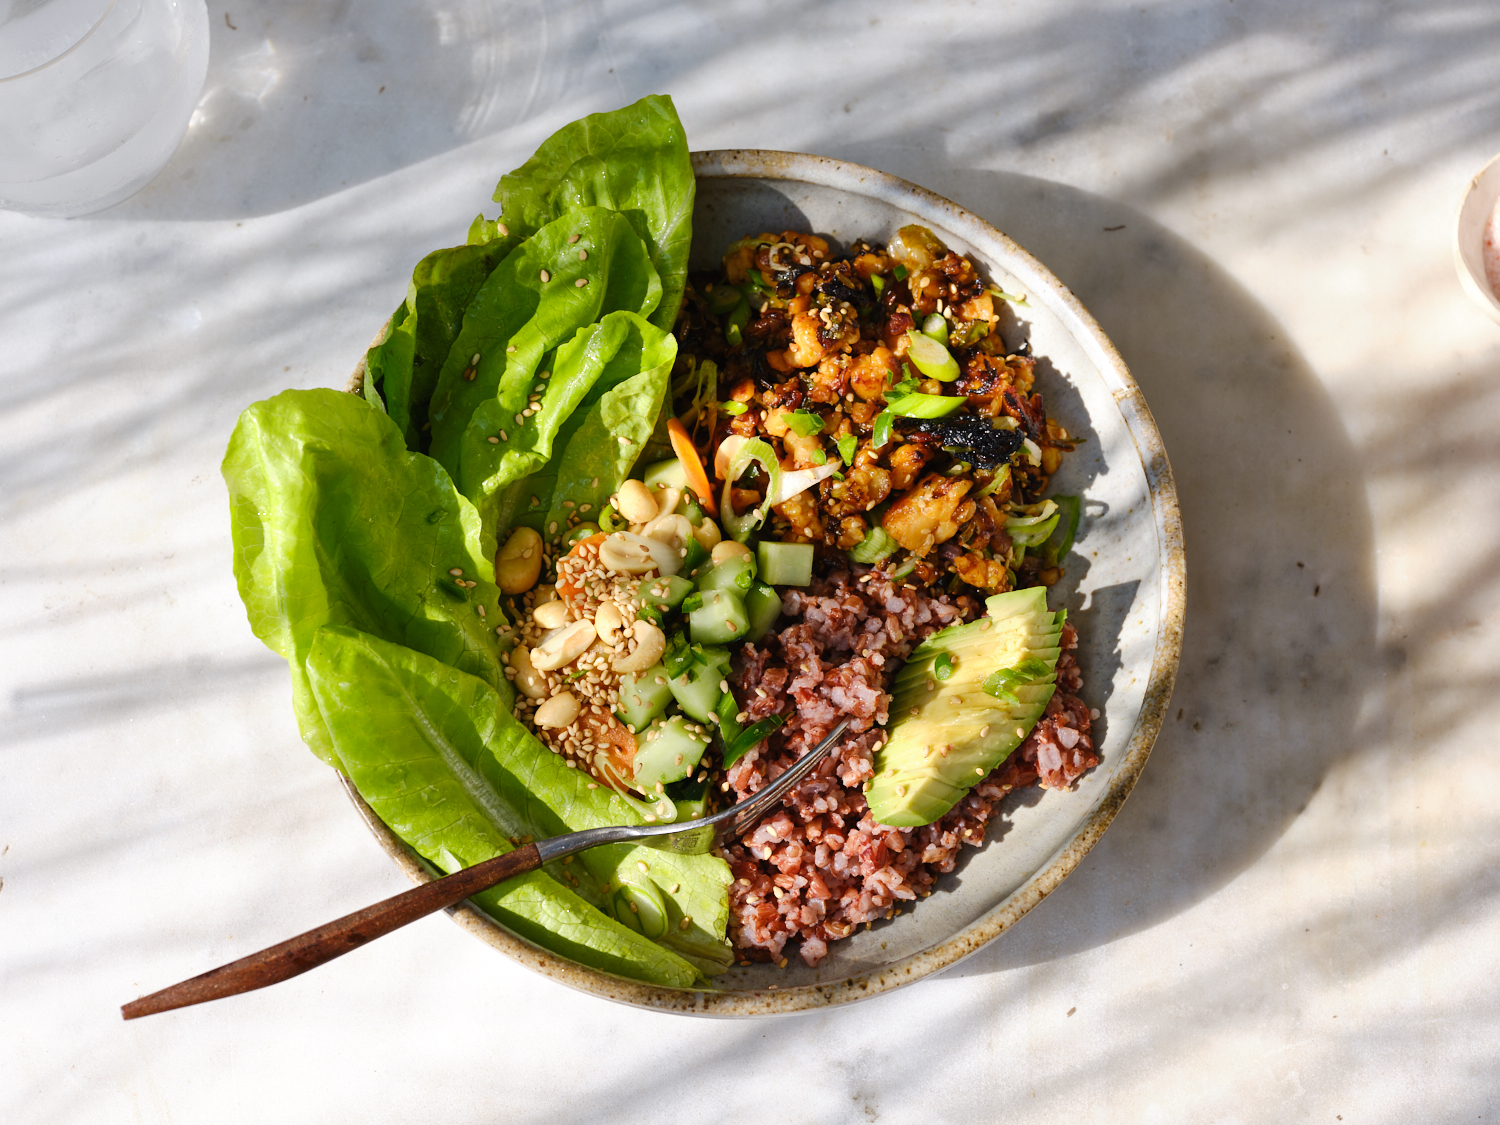 Spicy Tempeh Crumble Bowl